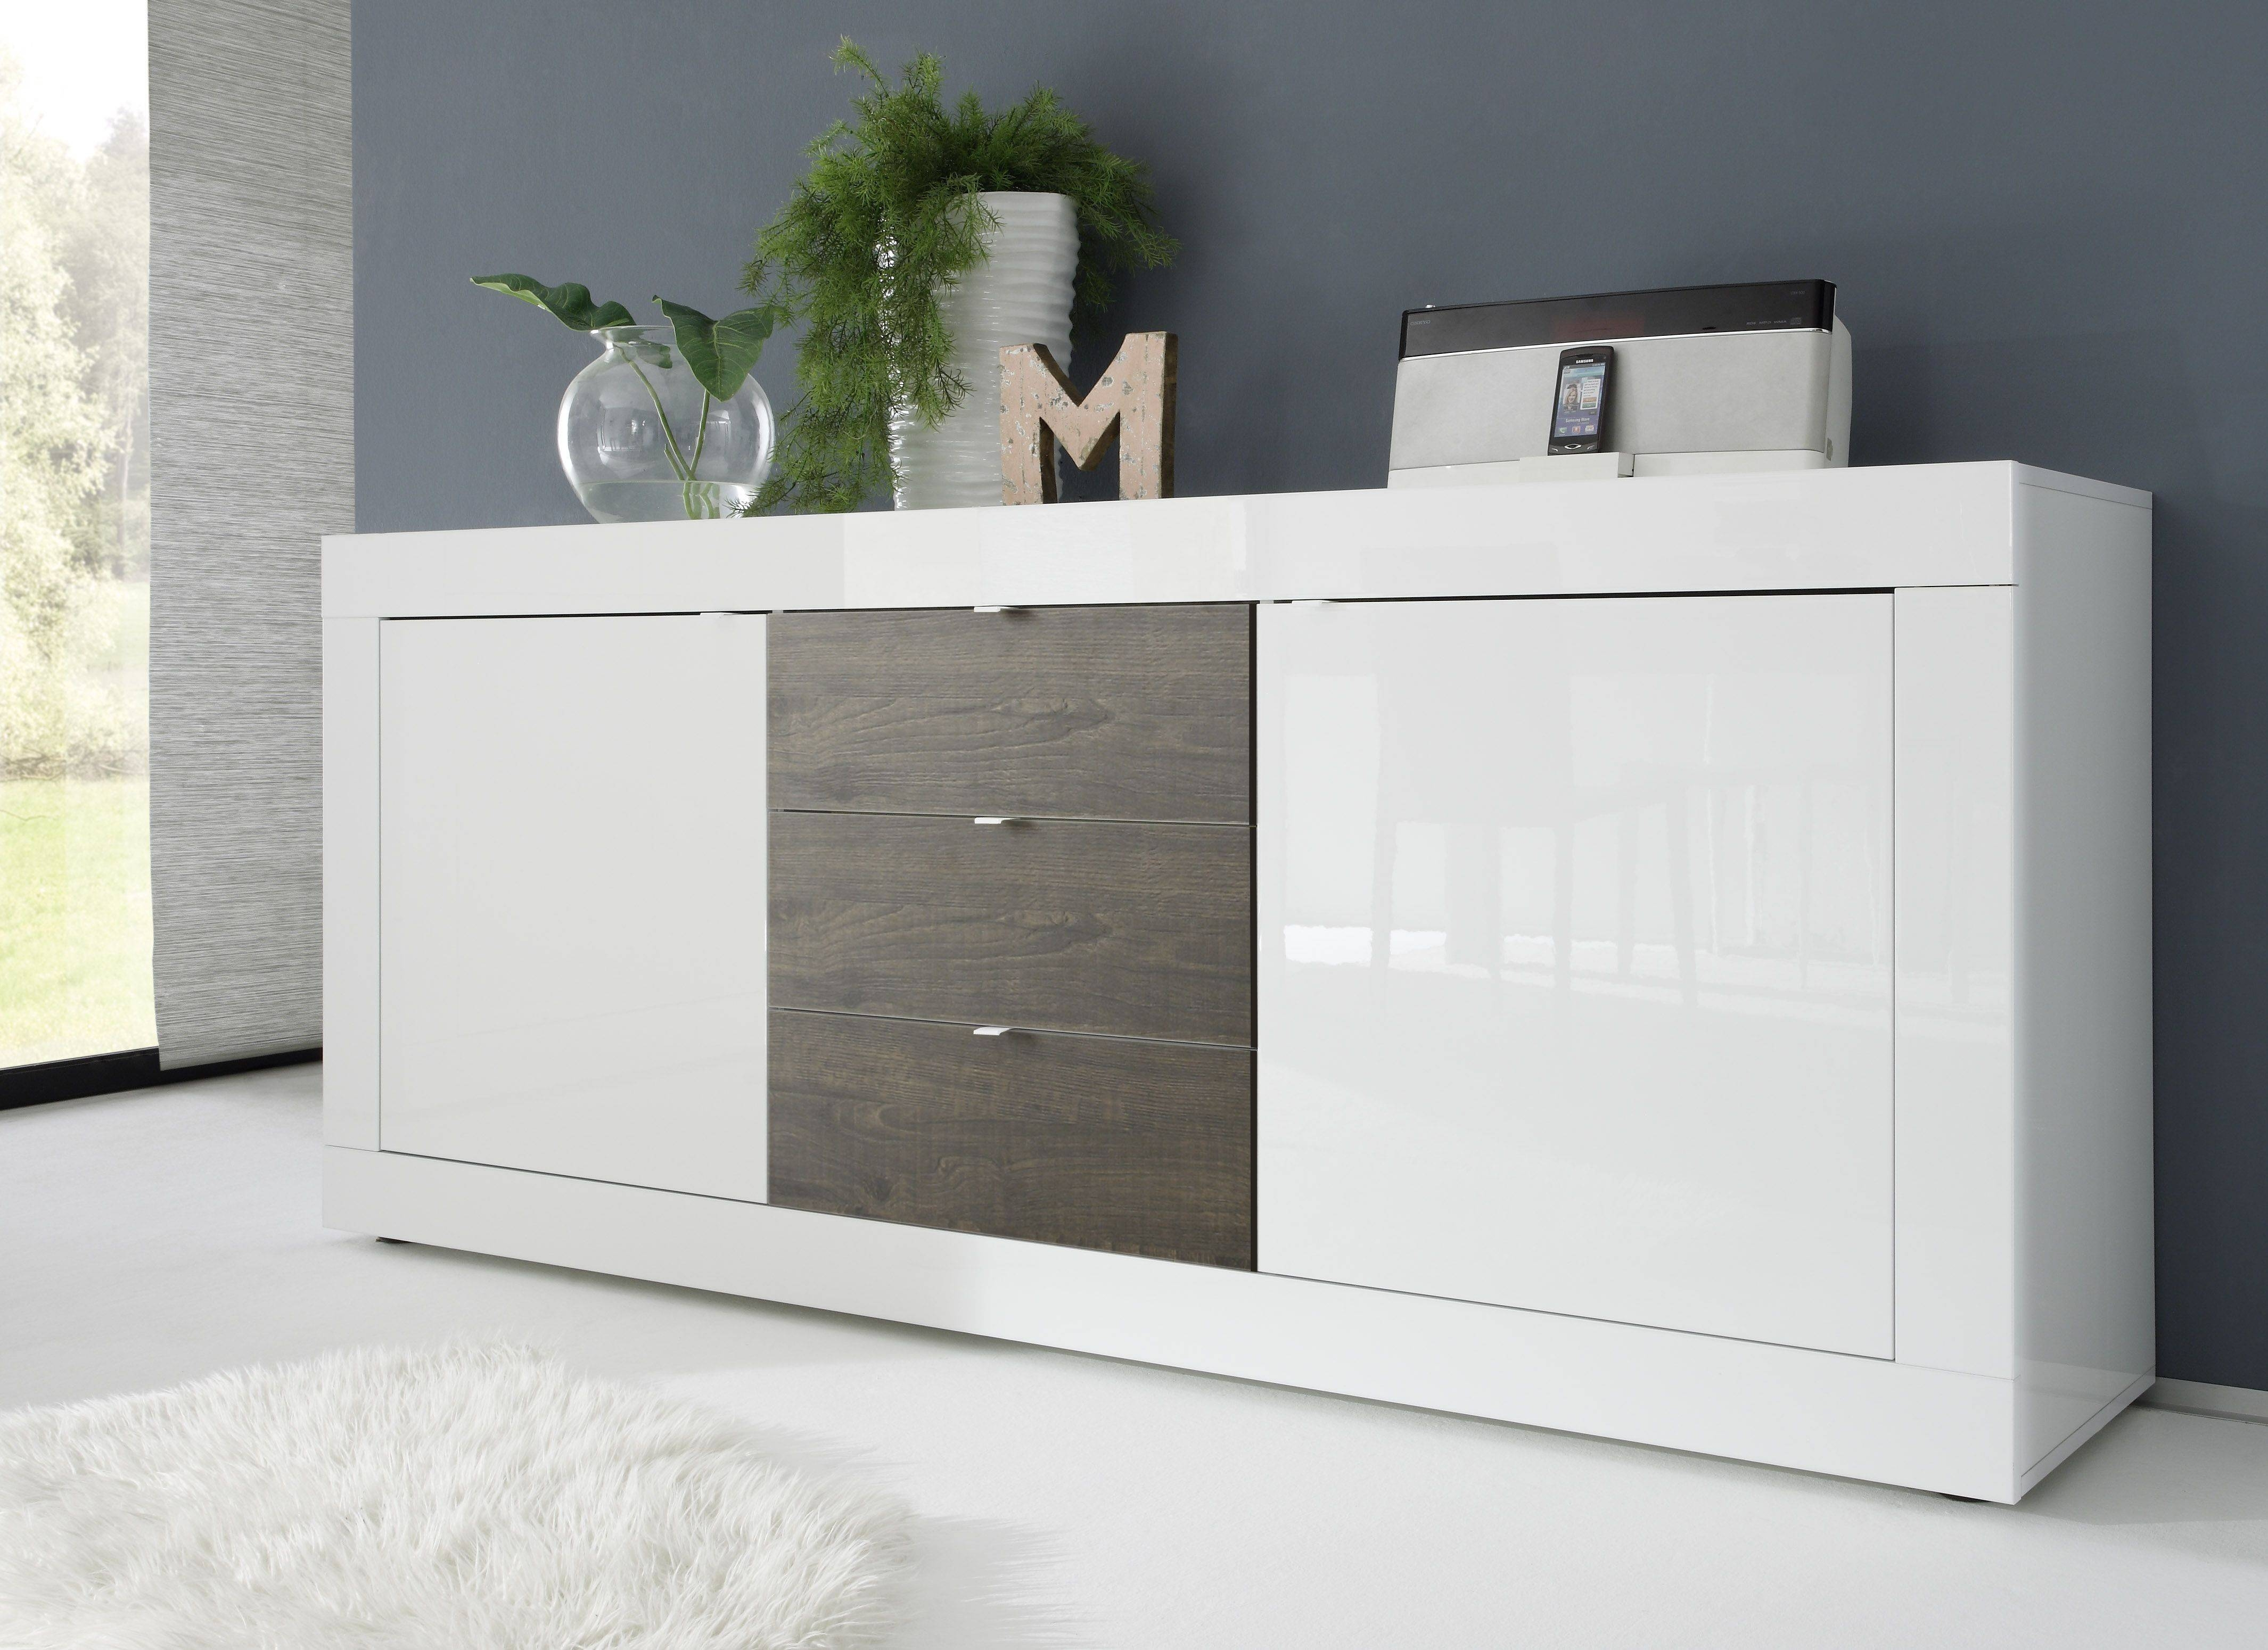 Dolcevita Ii White Gloss Sideboard - Sideboards - Sena Home Furniture pertaining to White High Gloss Sideboards (Image 10 of 30)